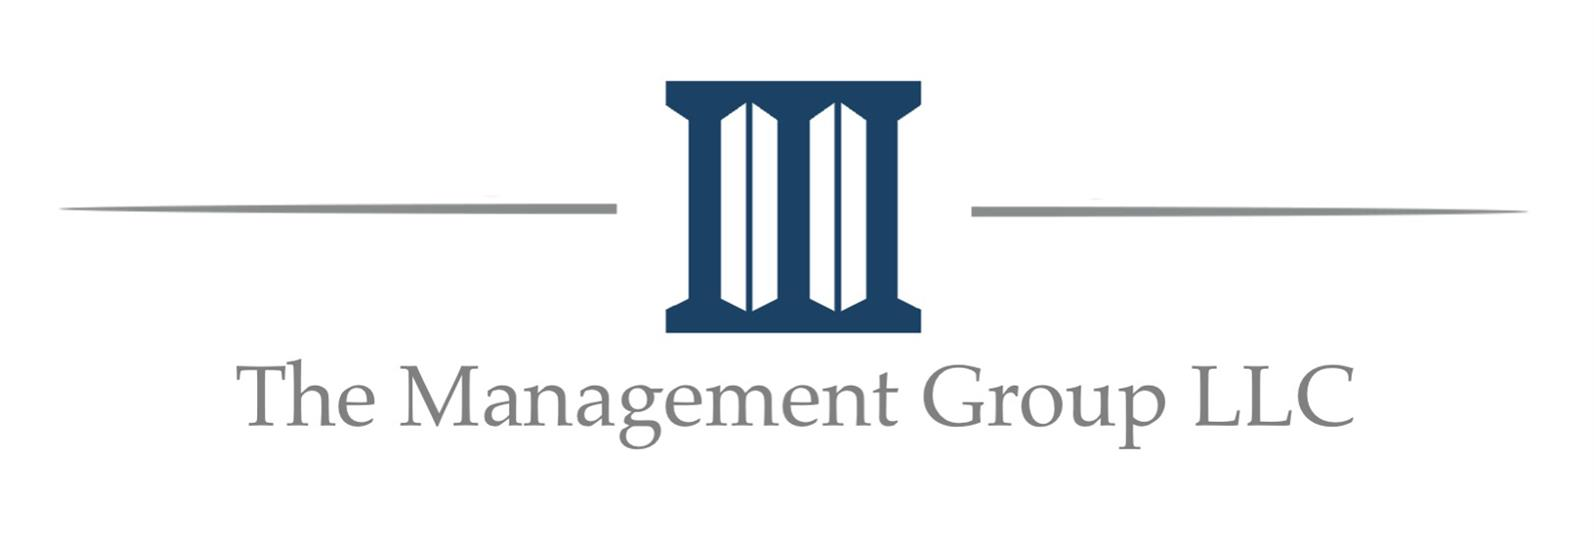 Company Logo The Management Group, Inc.